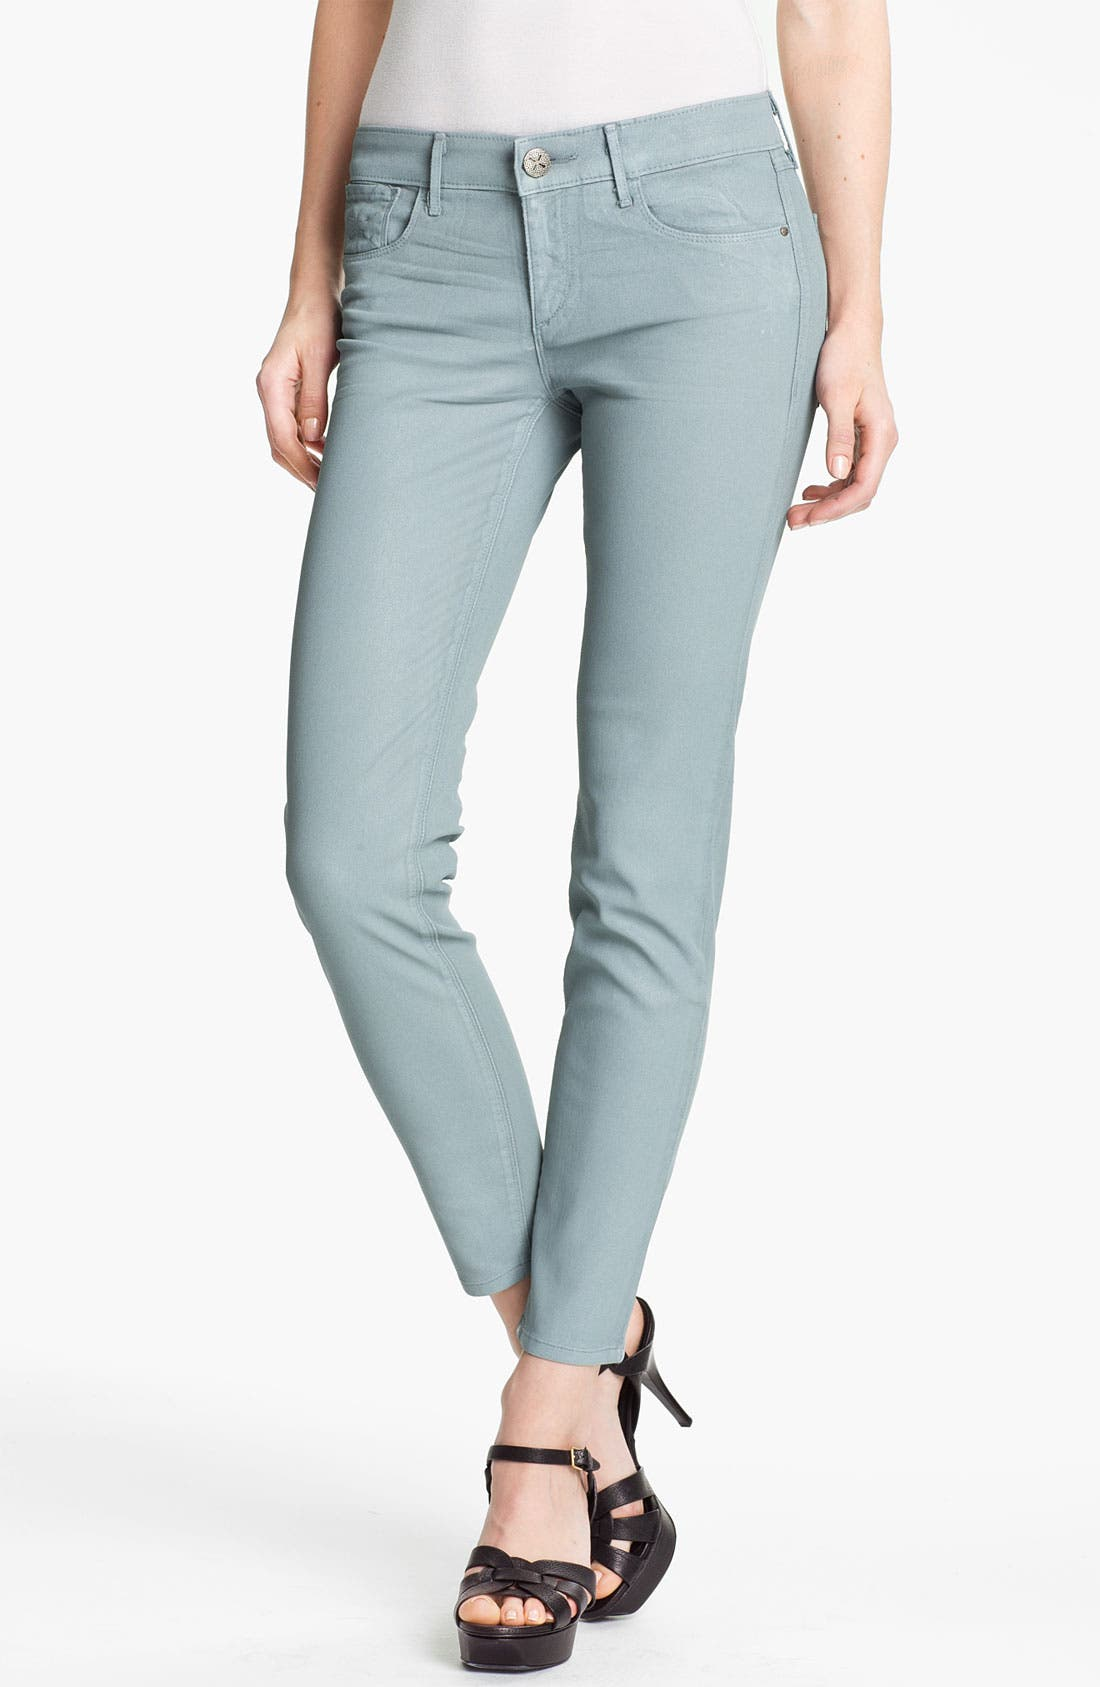 Alternate Image 1 Selected - Habitual 'Angelina' Coated Cigarette Leg Stretch Jeans